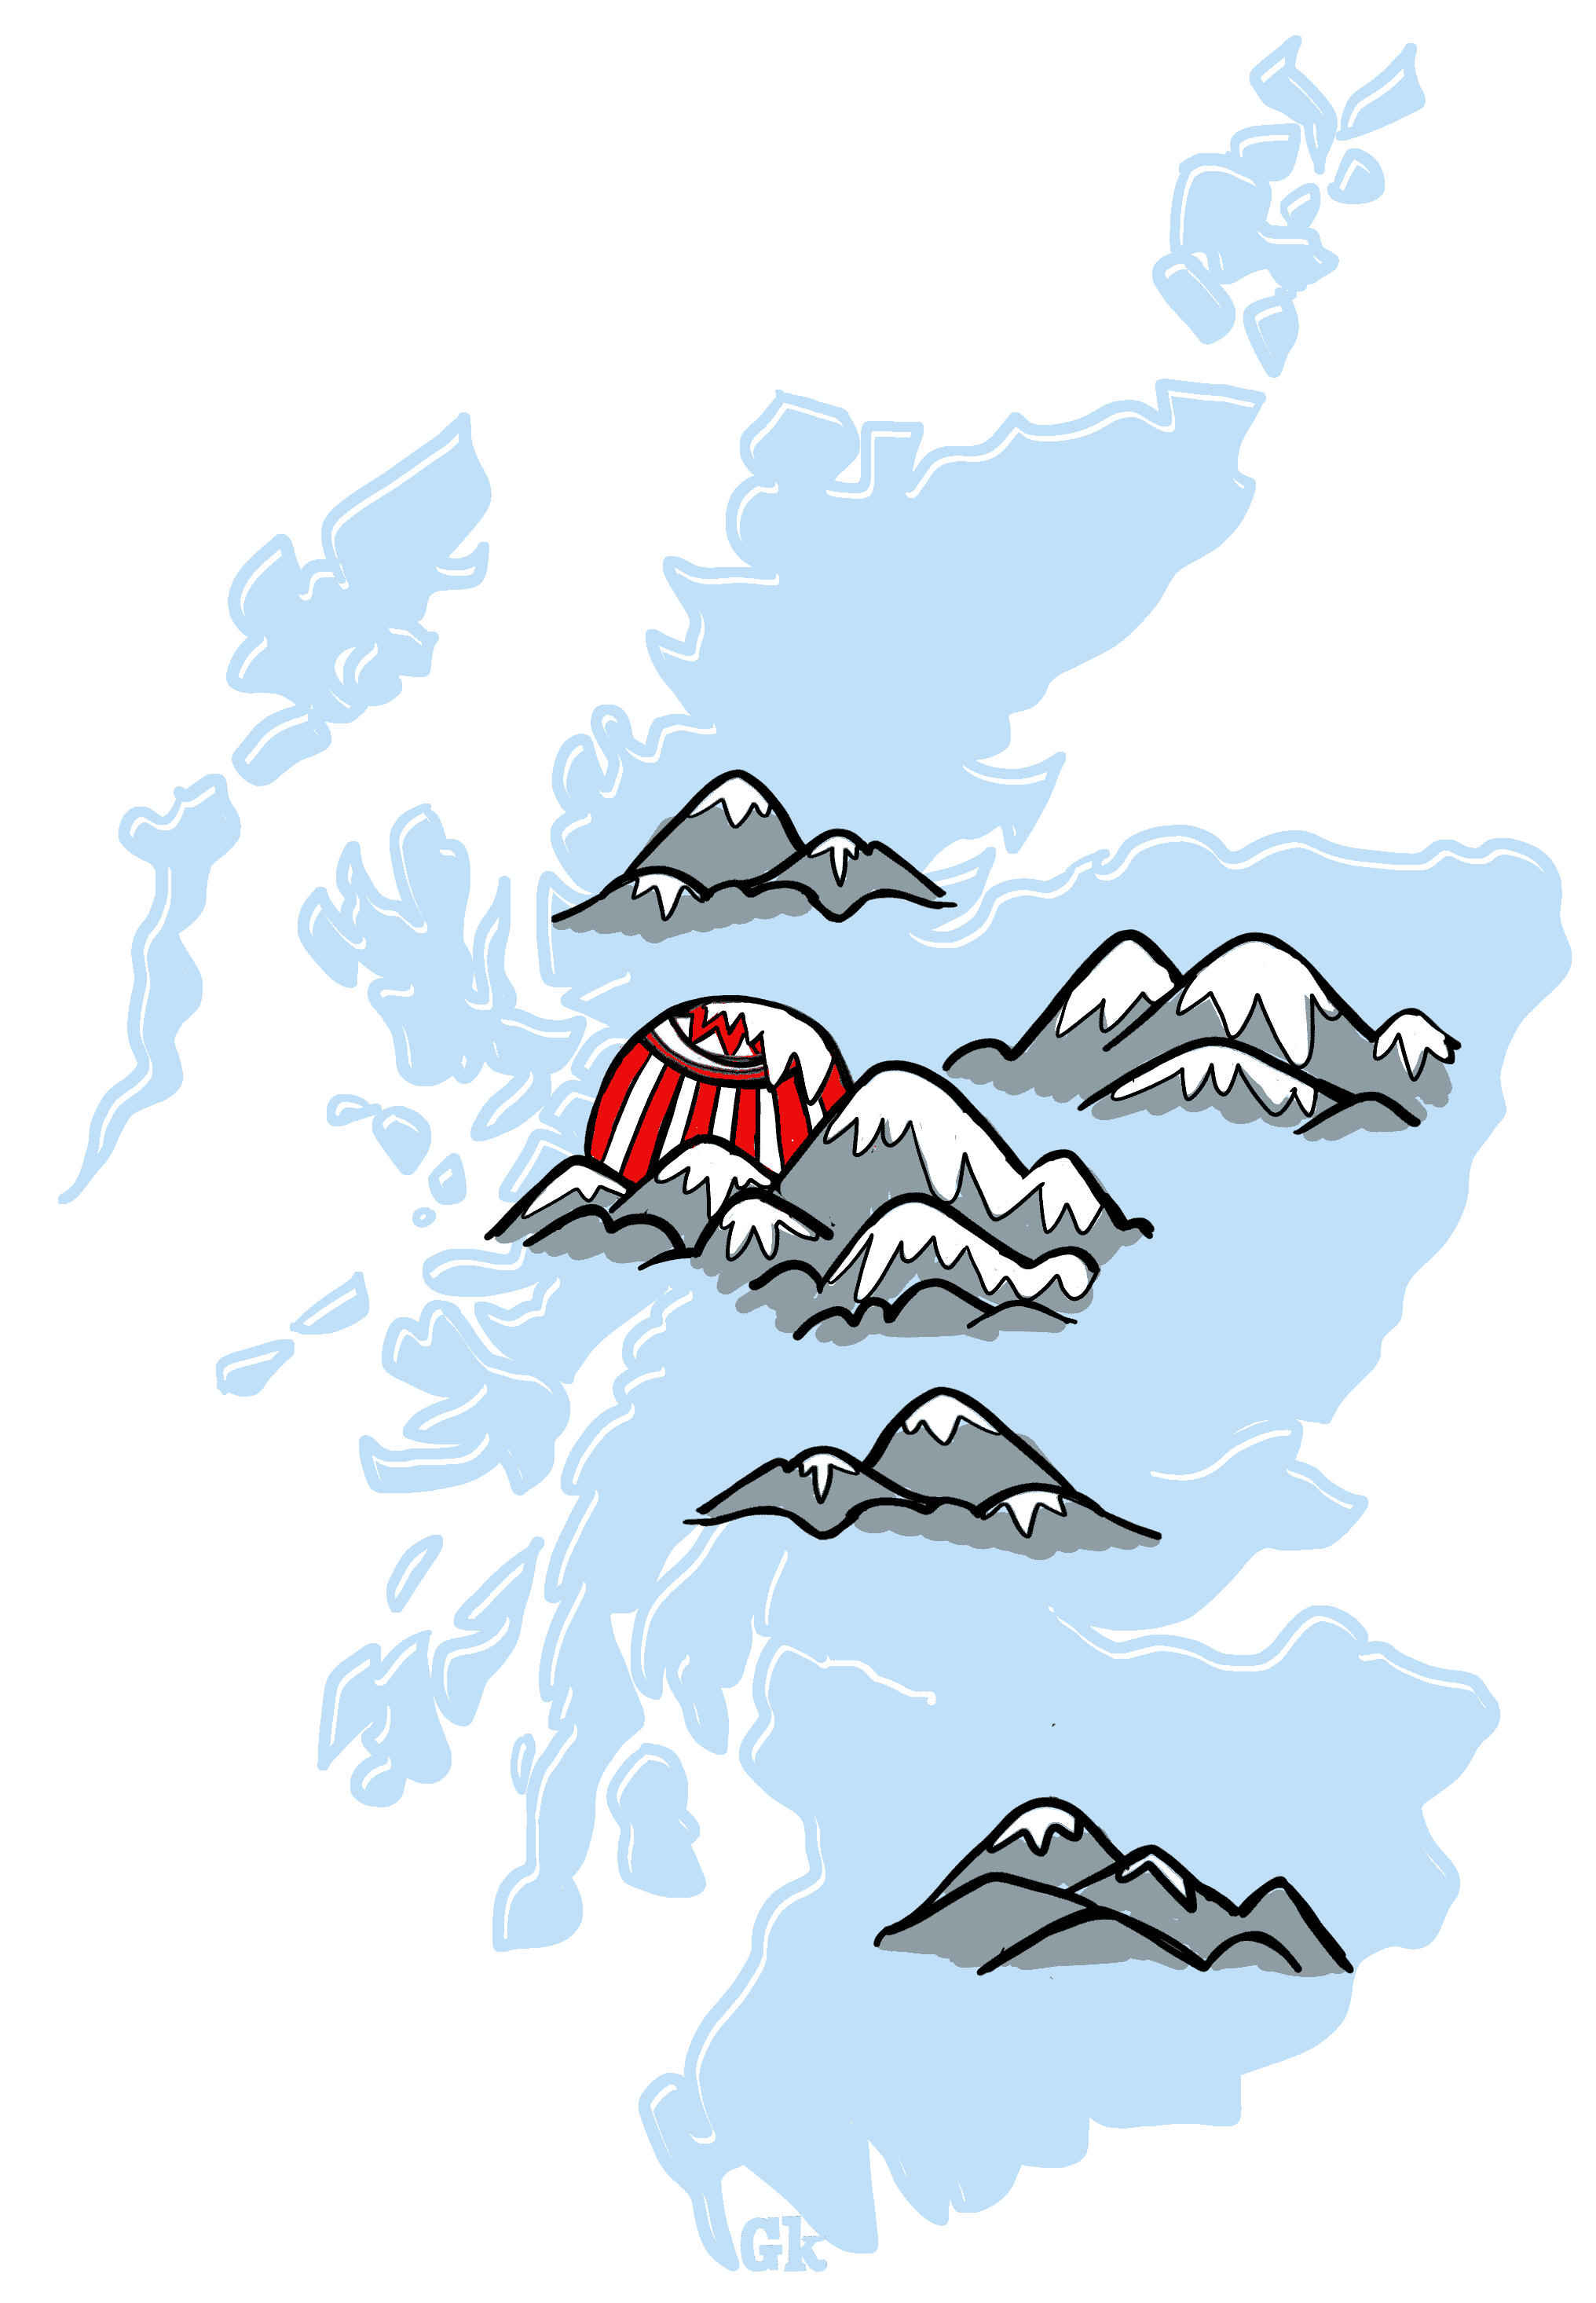 Scottish mountains map of Scotland